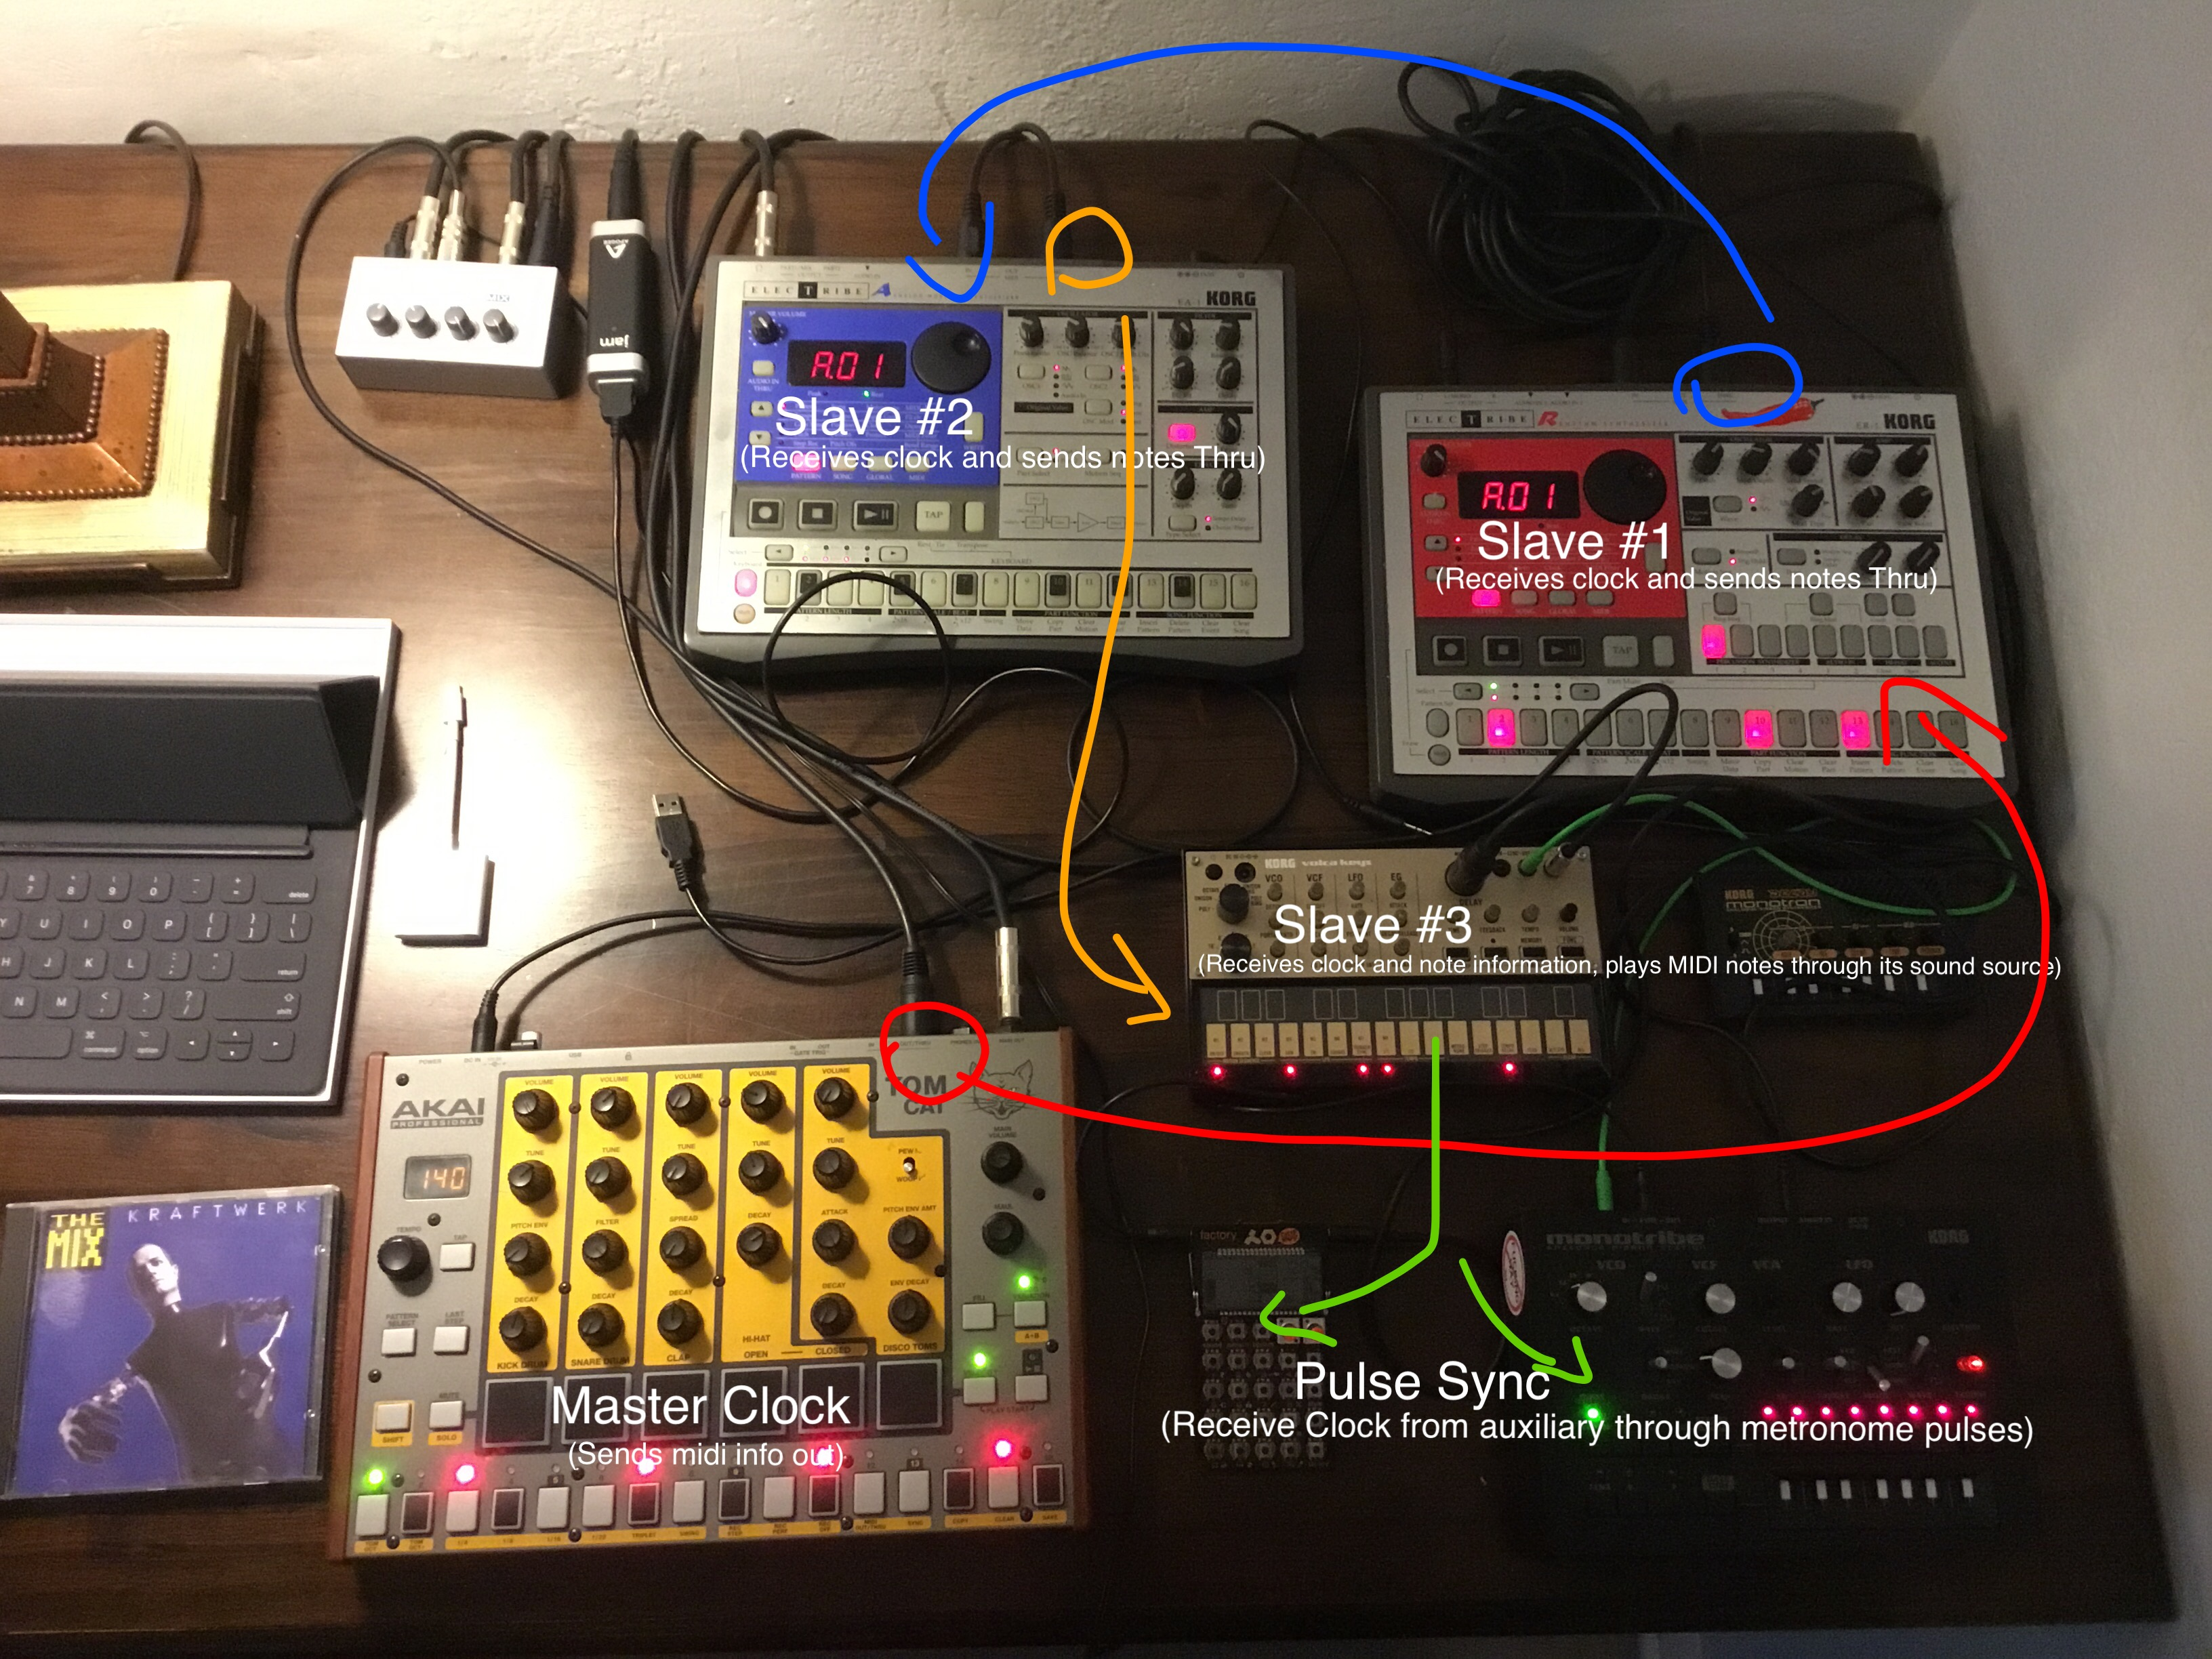 Multiple electronic instruments connected through MIDI connections. Set up explained in text below the image.